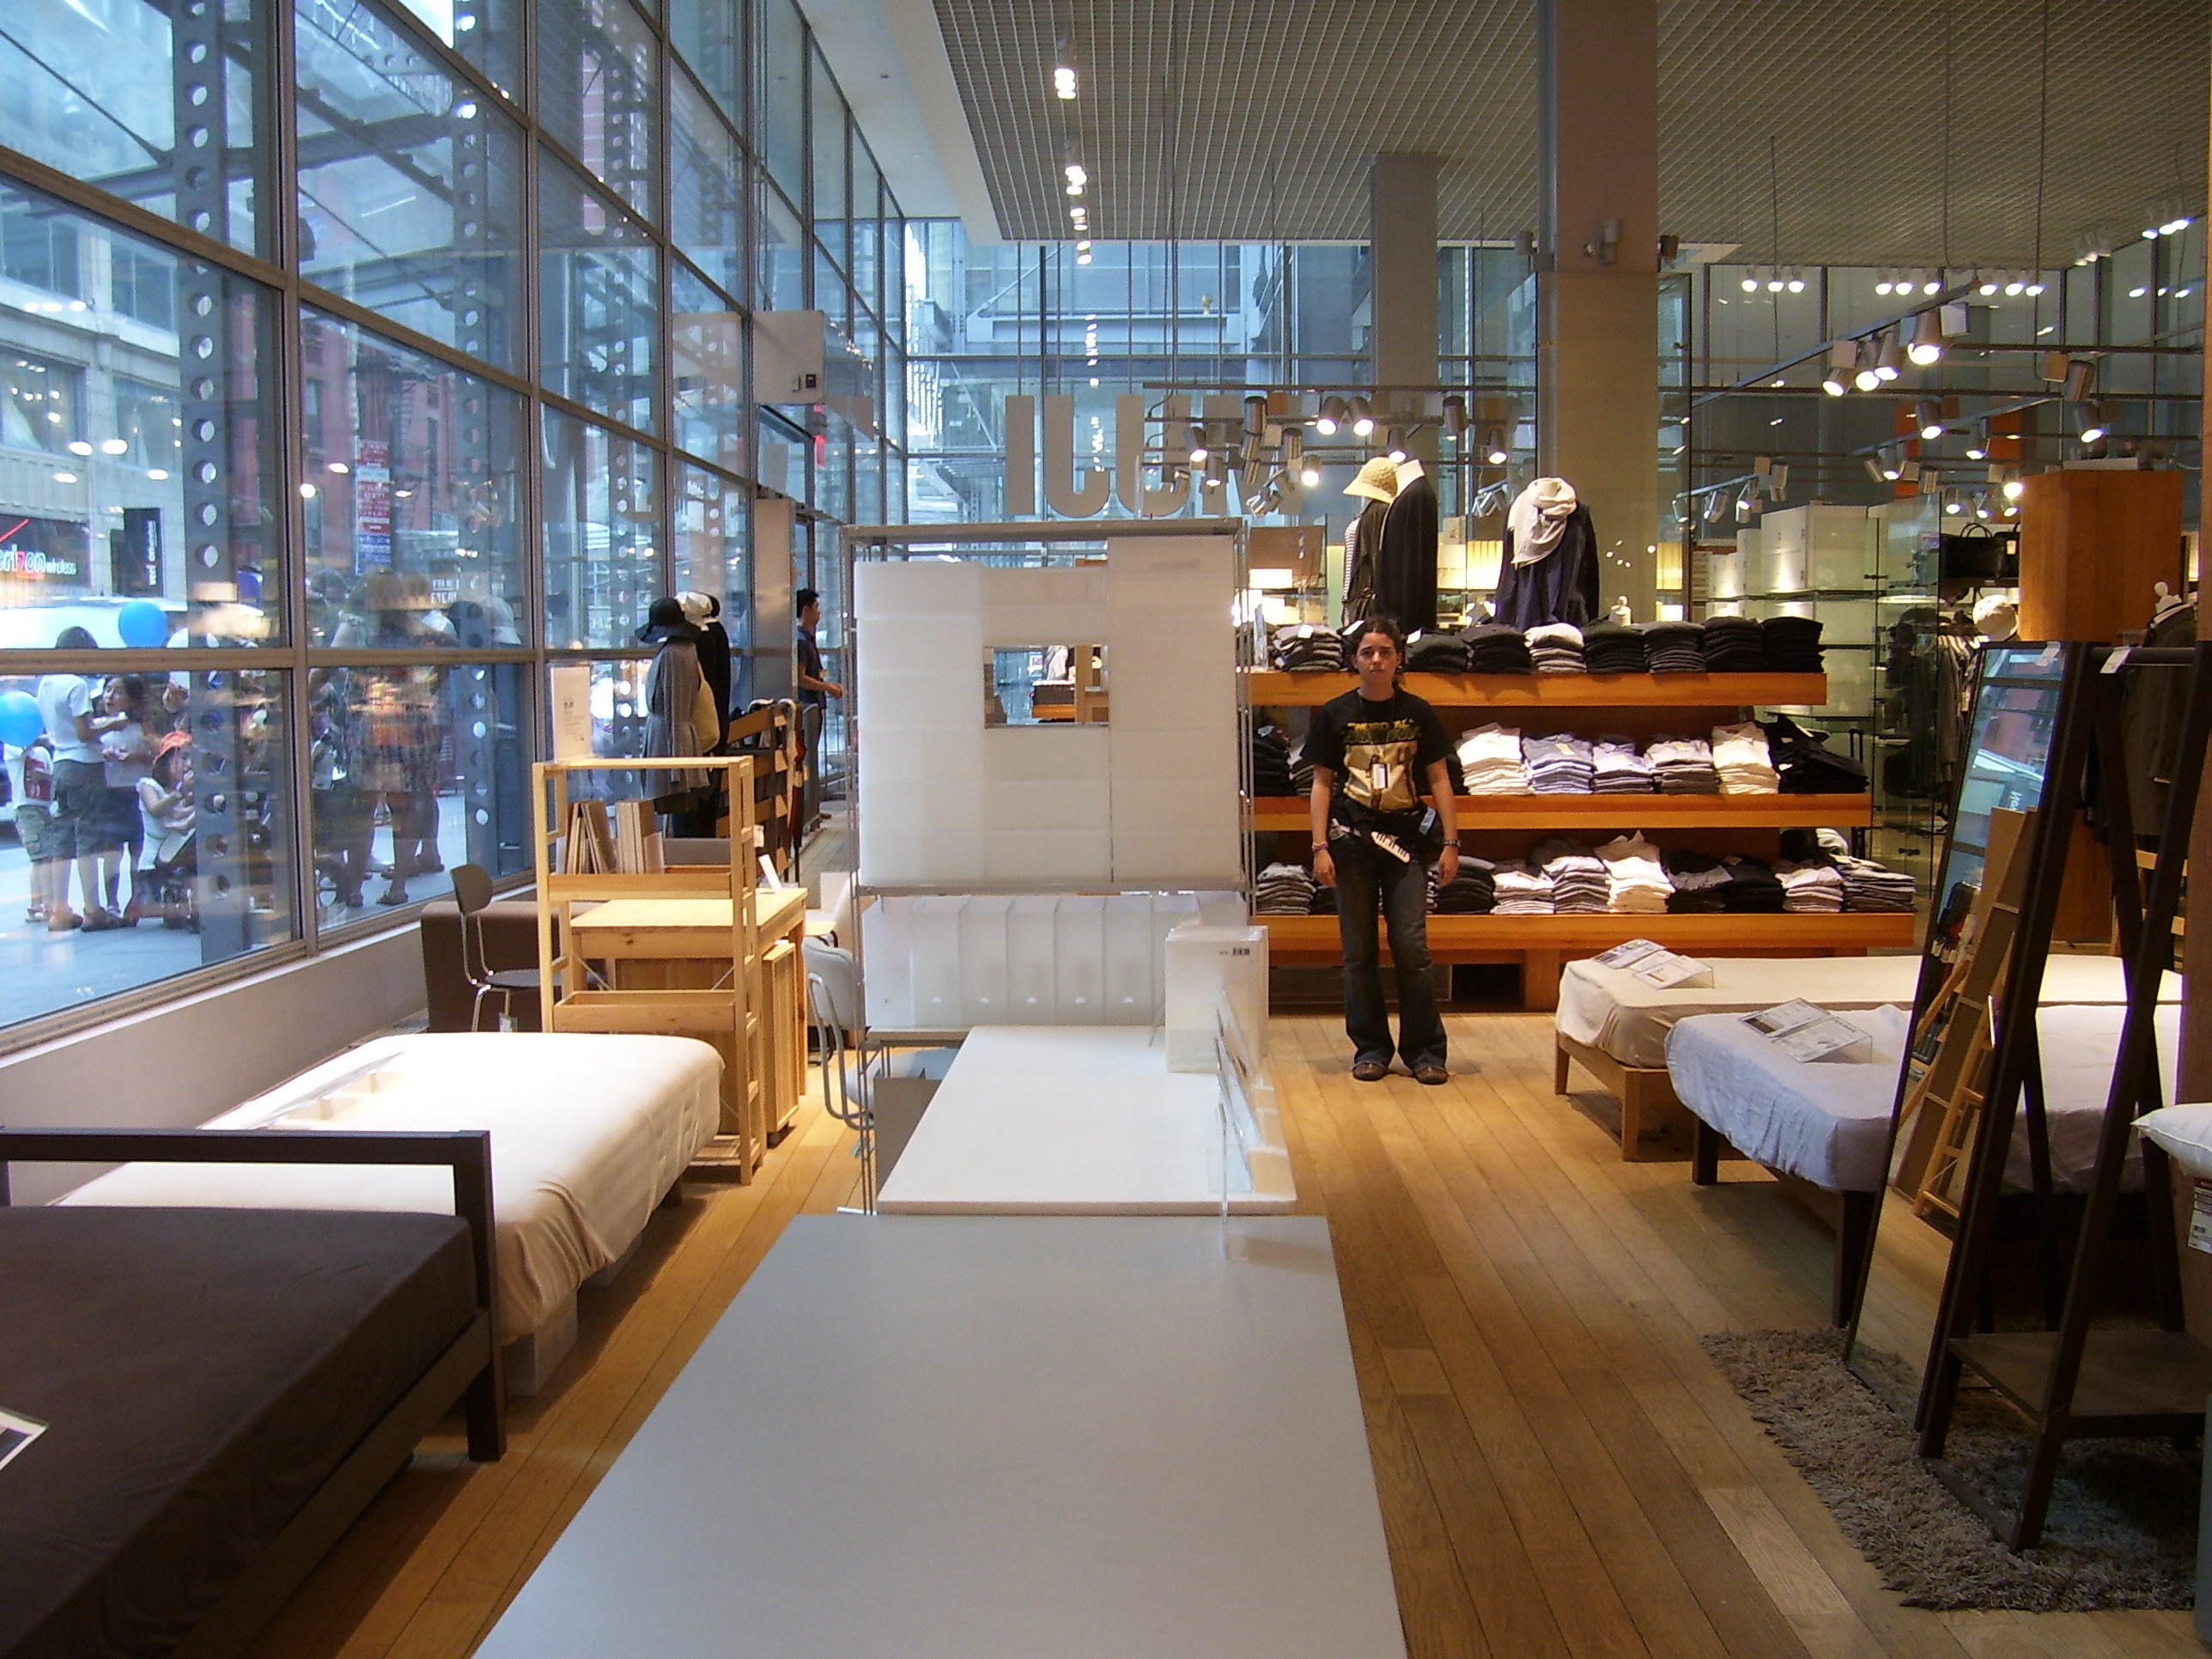 High Quality File:Muji NYC Inside Furniture